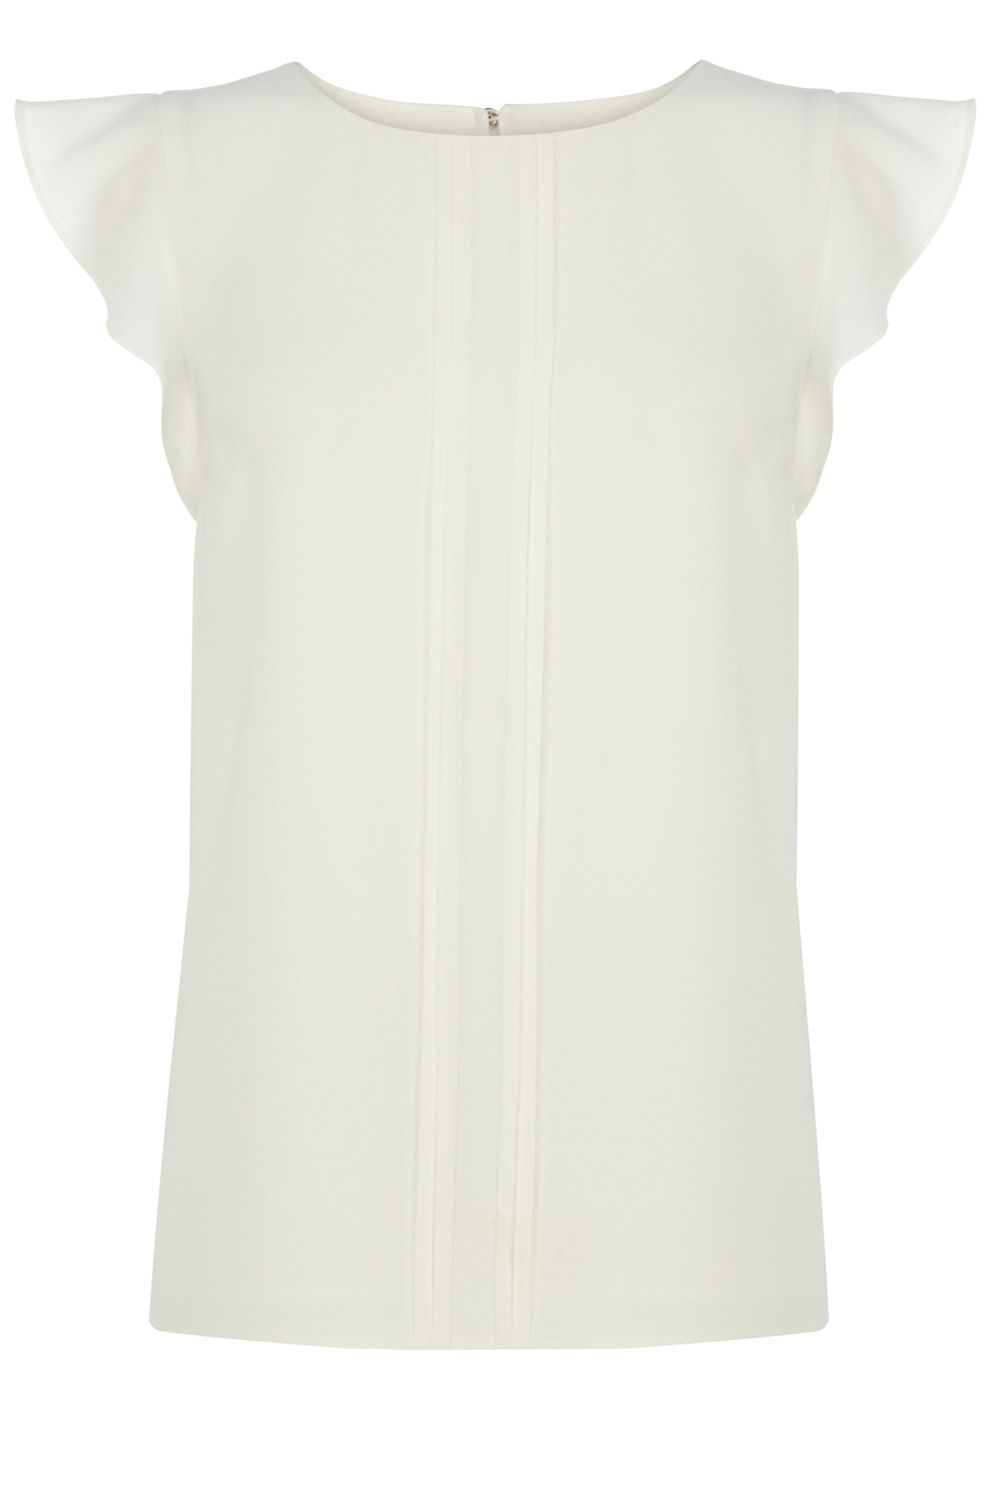 Pintuck frill sleeve top